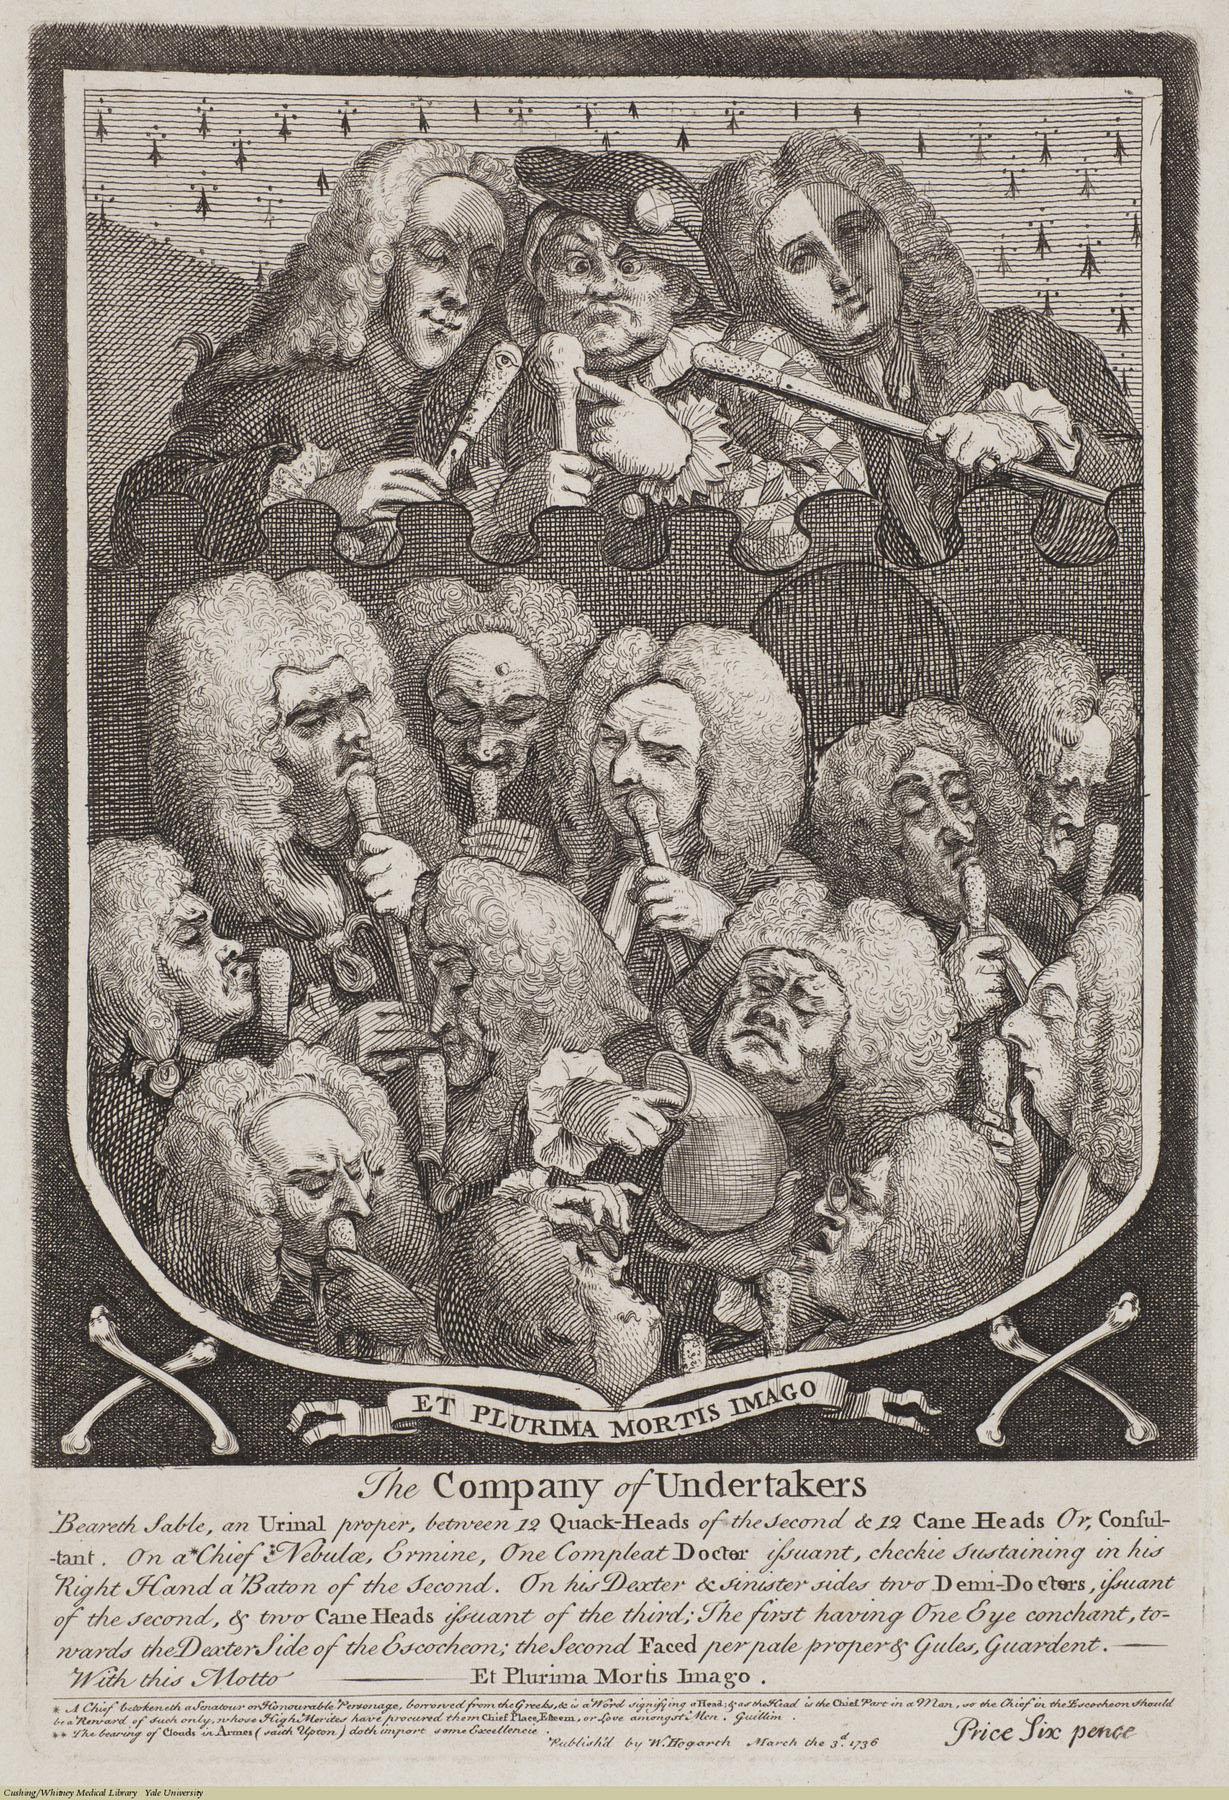 The Company of Undertakers. William Hogarth, Laid, 1736. Subject: Mapp, Sarah (d.1736), Taylor, John (1703-72), Ward, Joshua (1685-1761), Dod, Pierce (1683-1754), Bamber, Dr., Quacks & quackery.